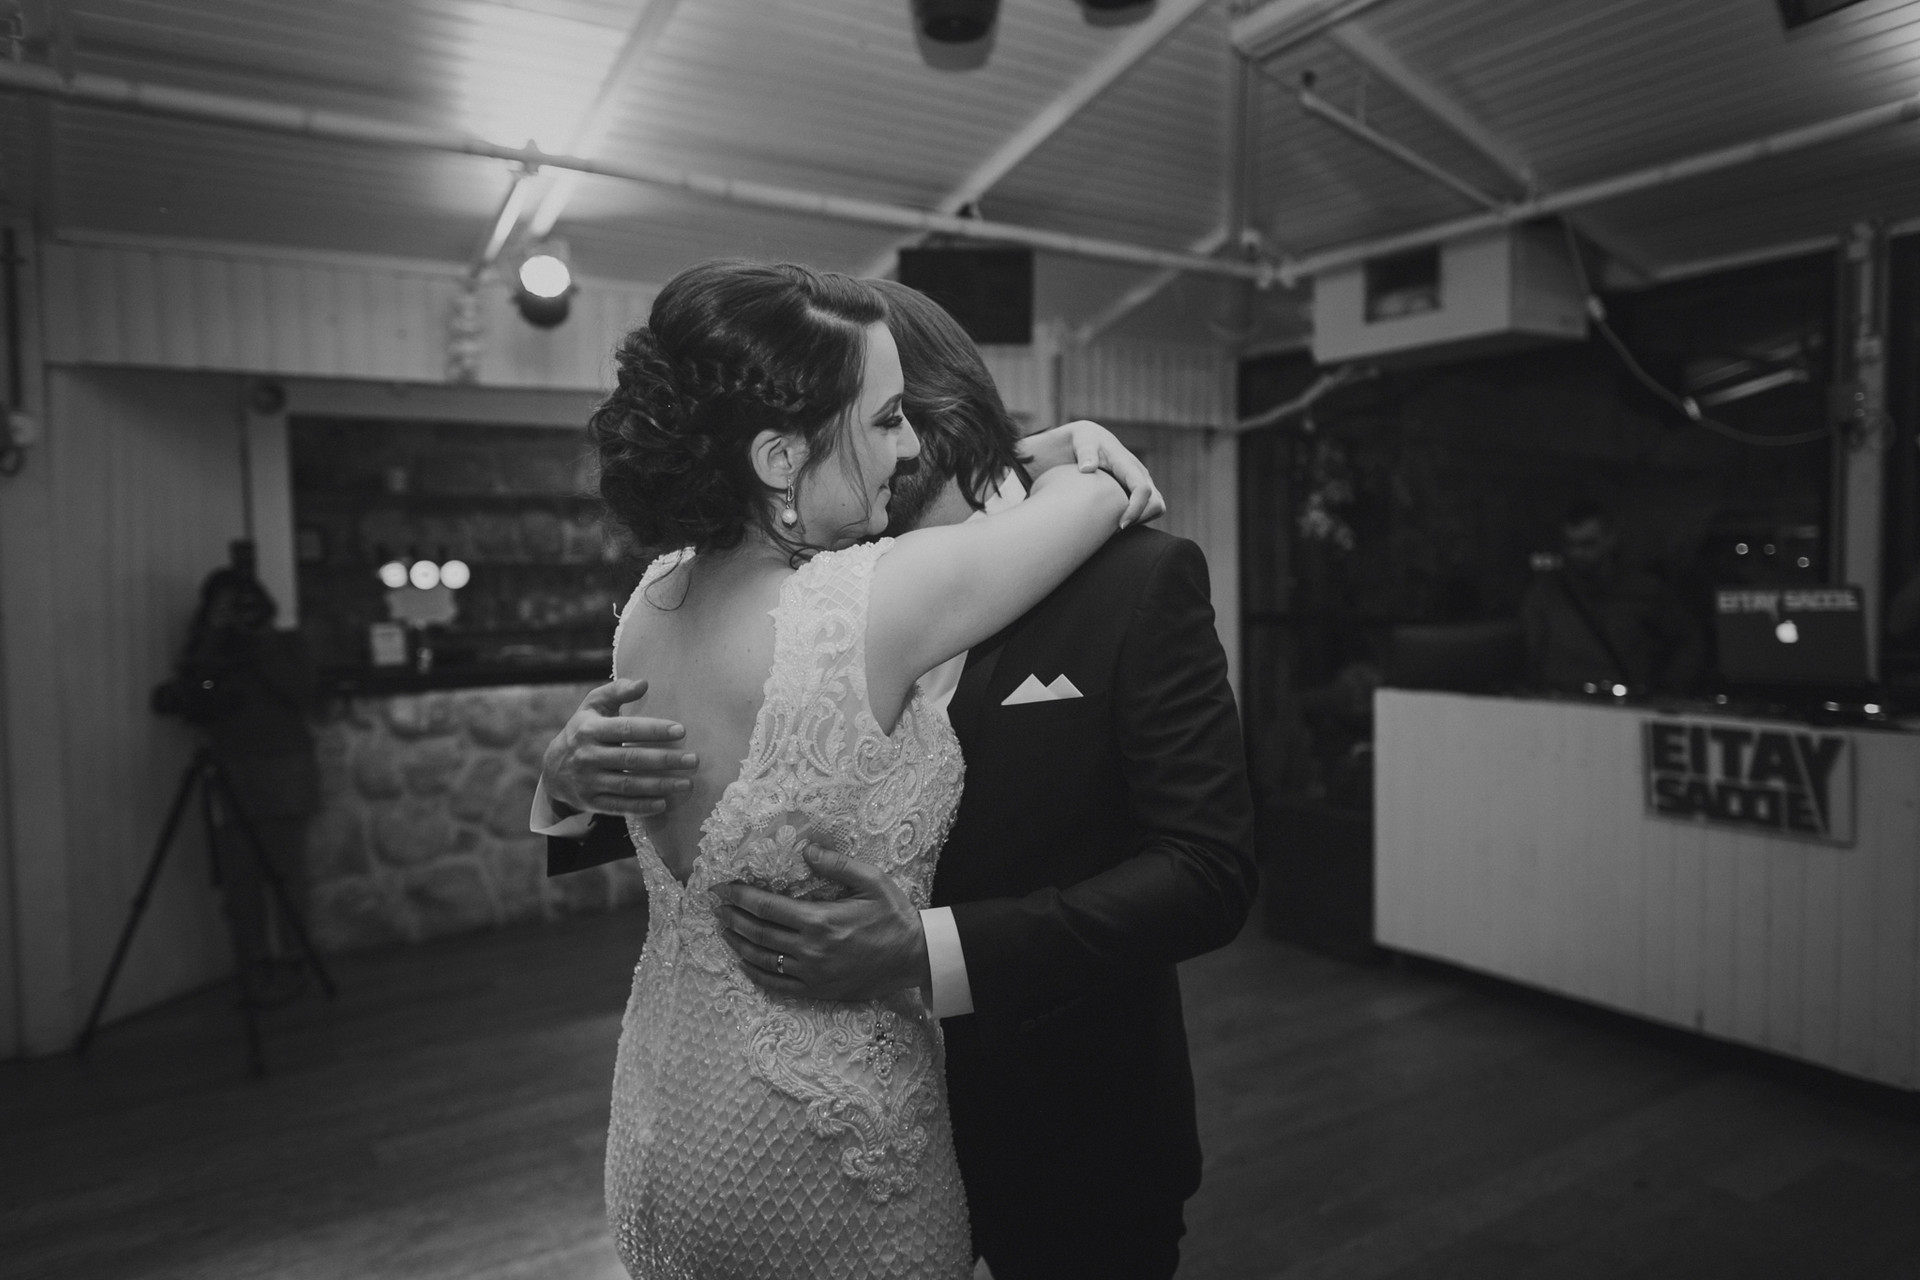 Ronit & Maxim TheWedding-848.jpg